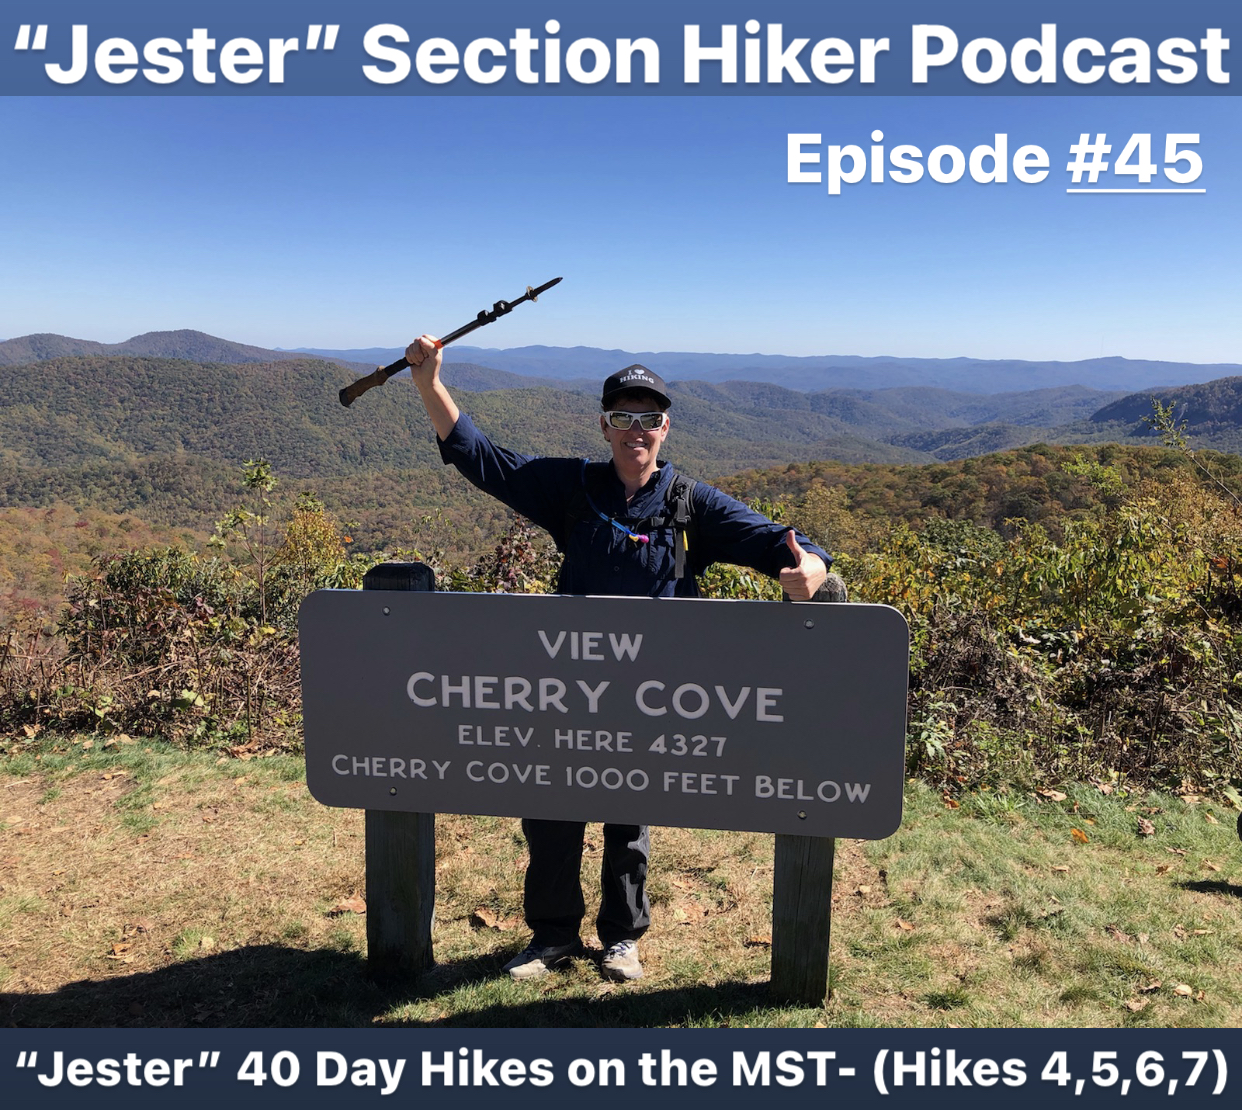 """Episode #45 - """"Jester"""" 40 Day Hikes on the MST (Hikes 4, 5, 6, 7)"""